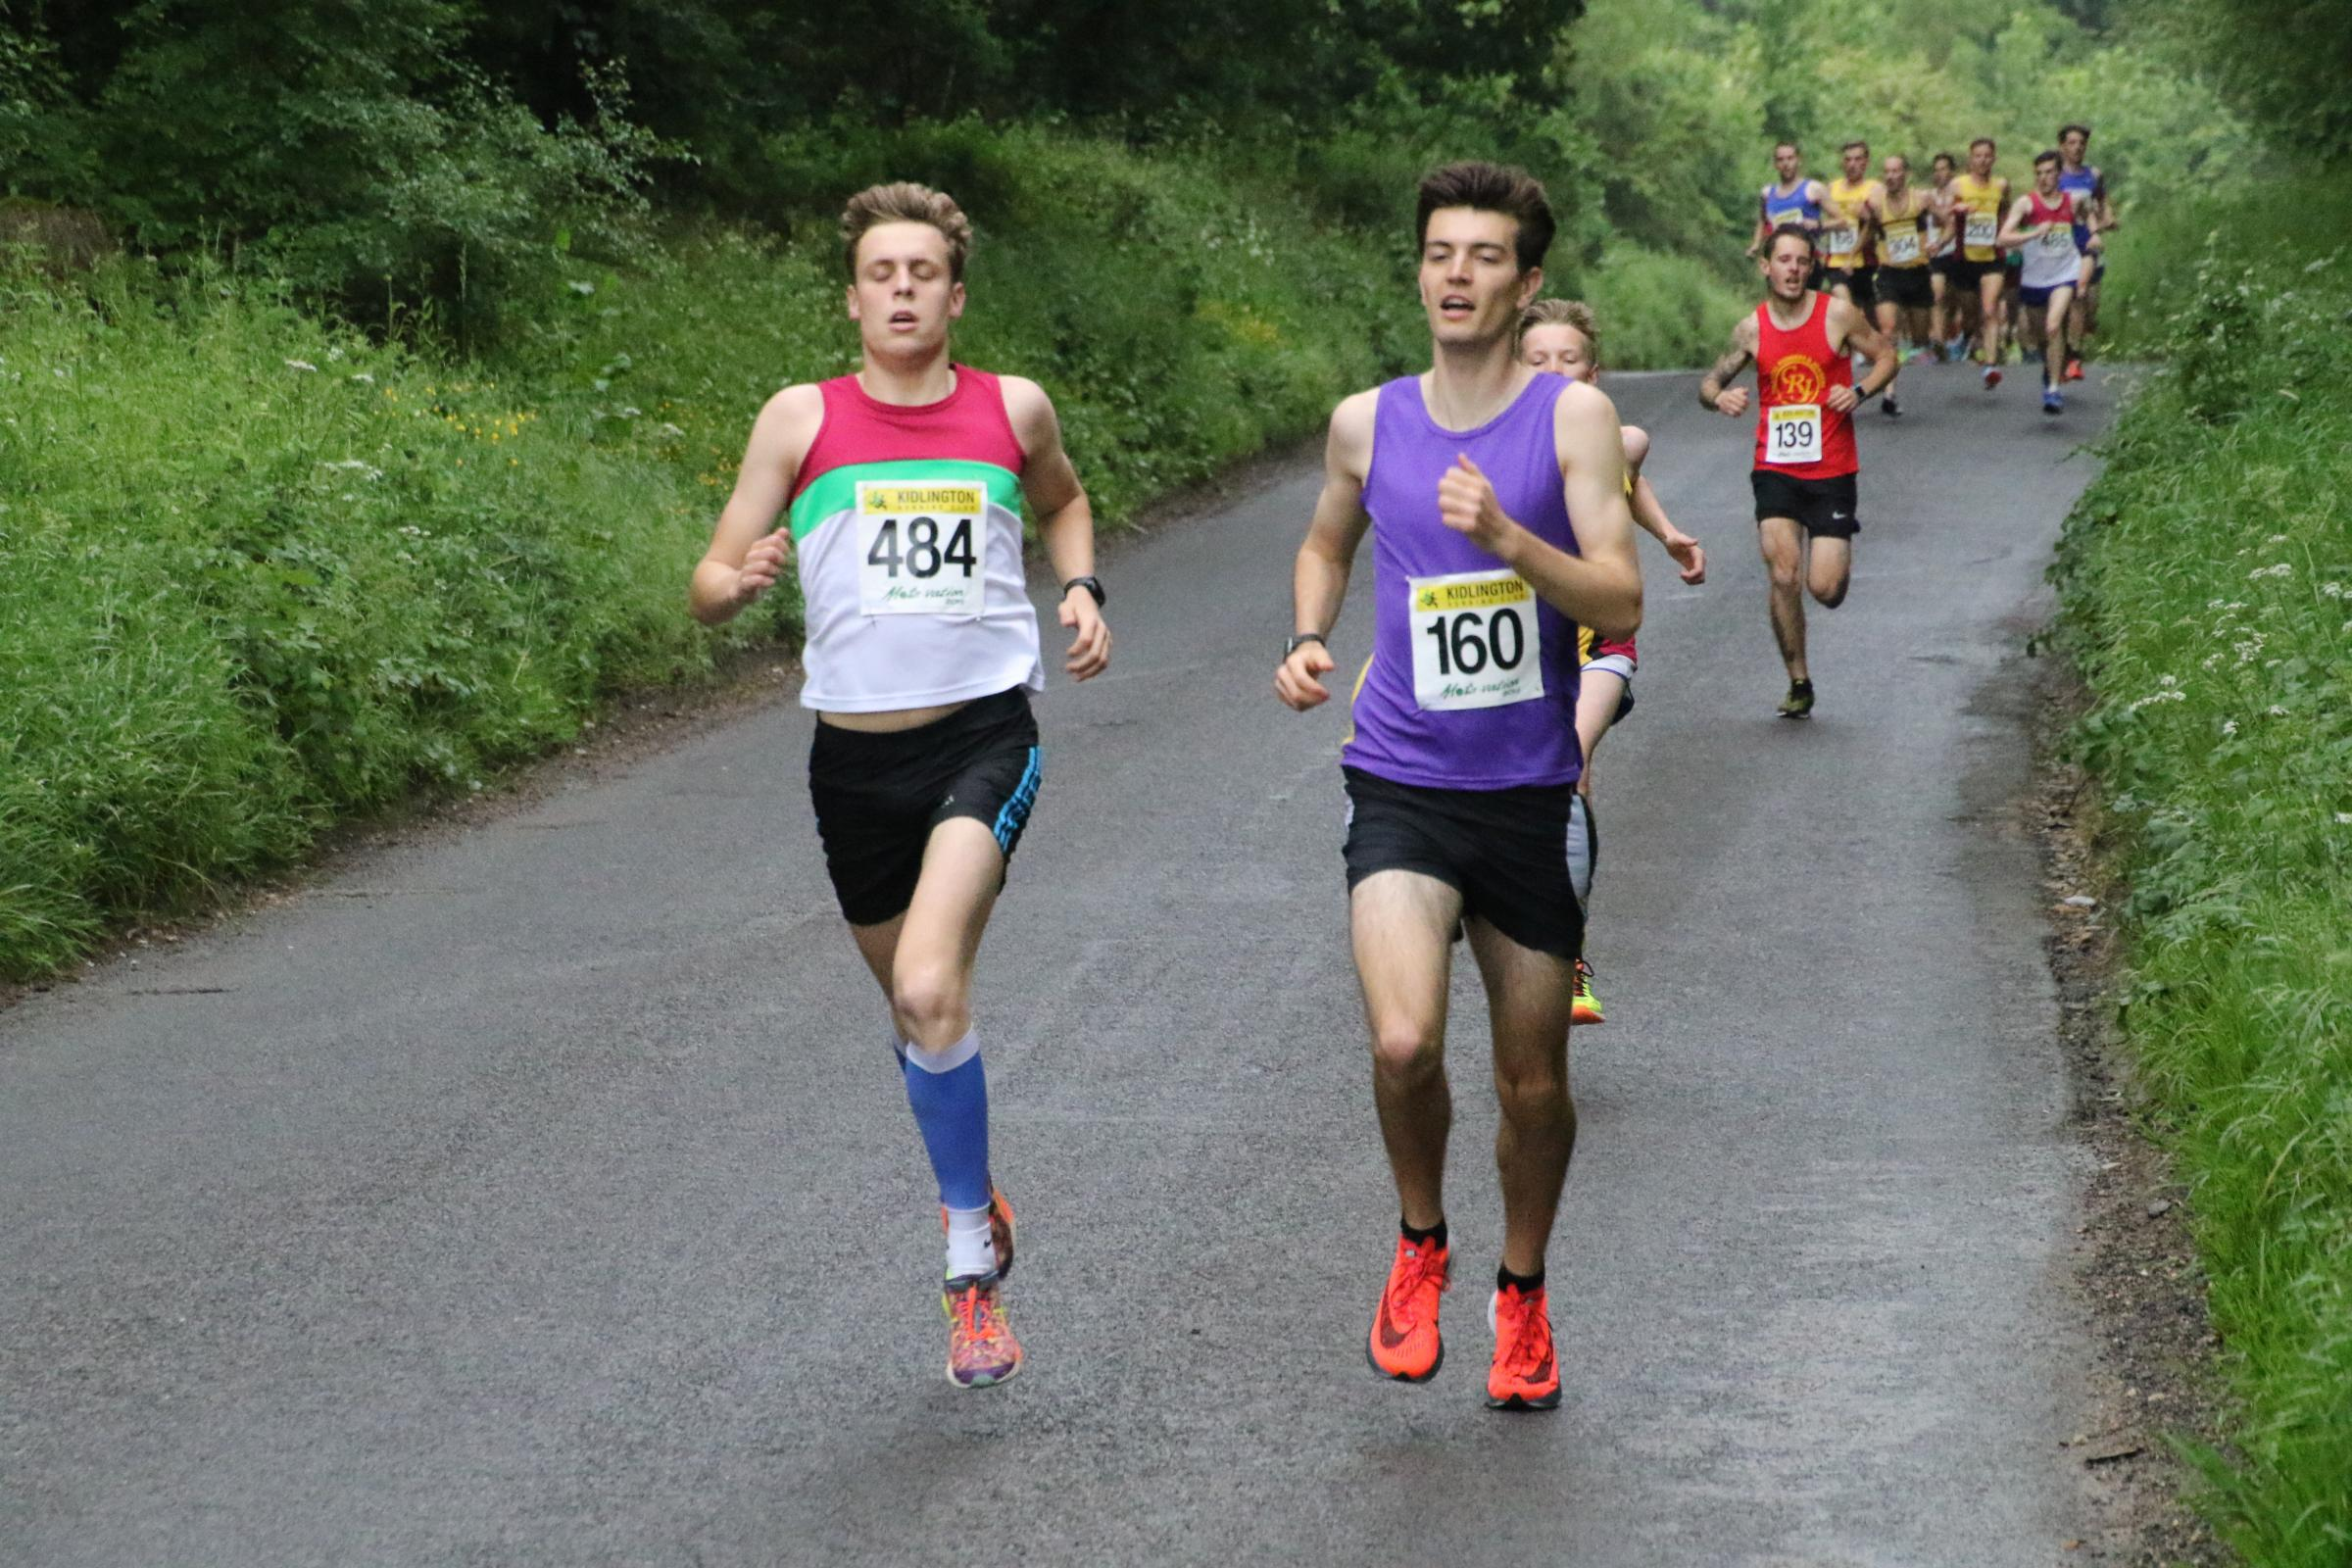 HEAD-TO-HEAD: Radley's Alex Miell-Ingram (160) just leads Gregor Kelling (Banbury) in the Mota-vation Series race at Bletchingdon before storming clear                              Picture: Barry Cornelius